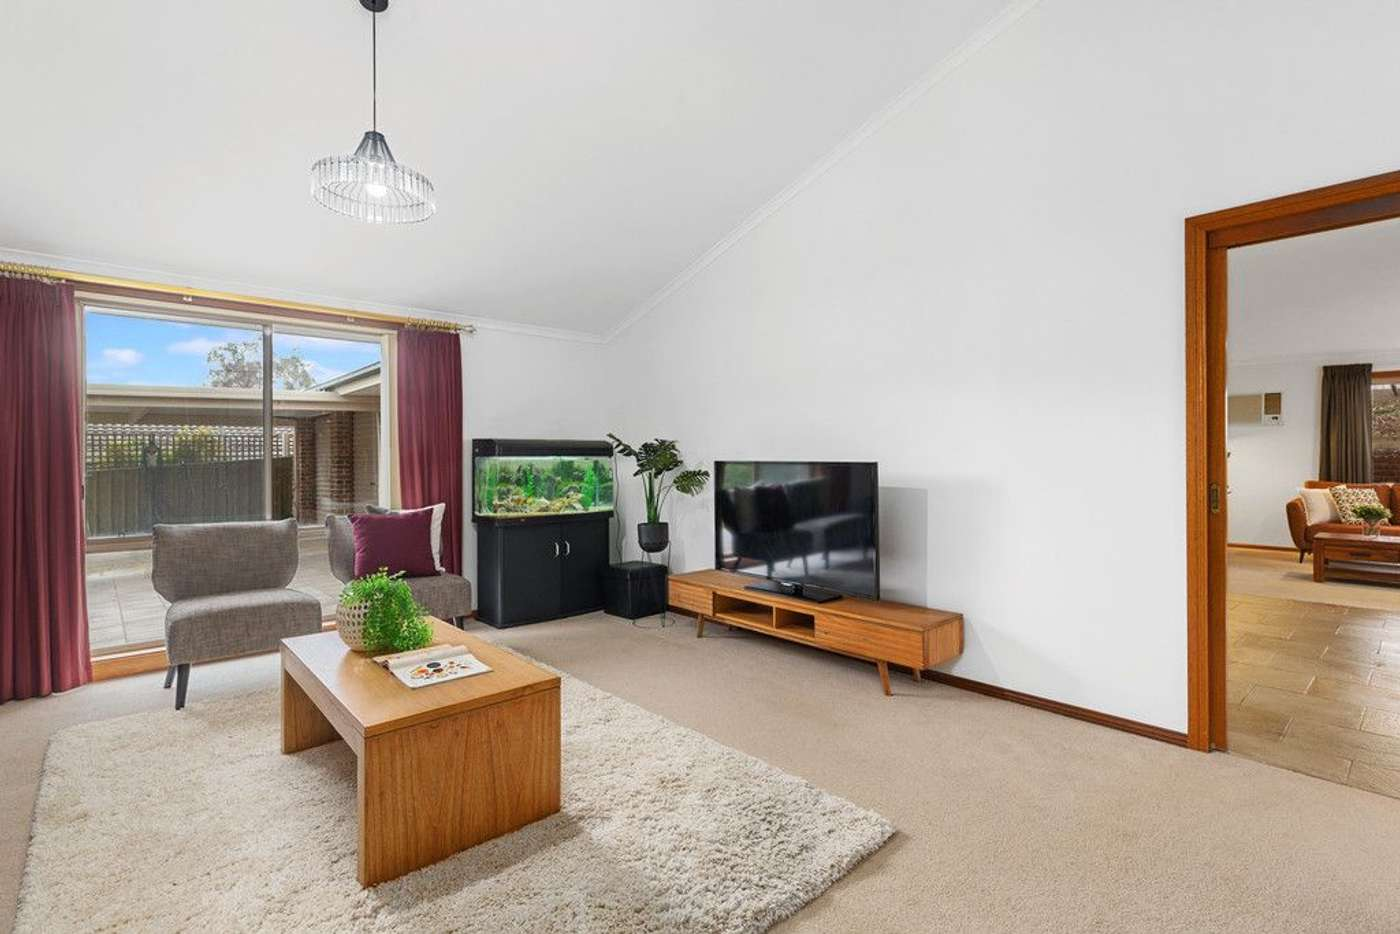 Fifth view of Homely house listing, 40 Horseshoe Drive, Aberfoyle Park SA 5159